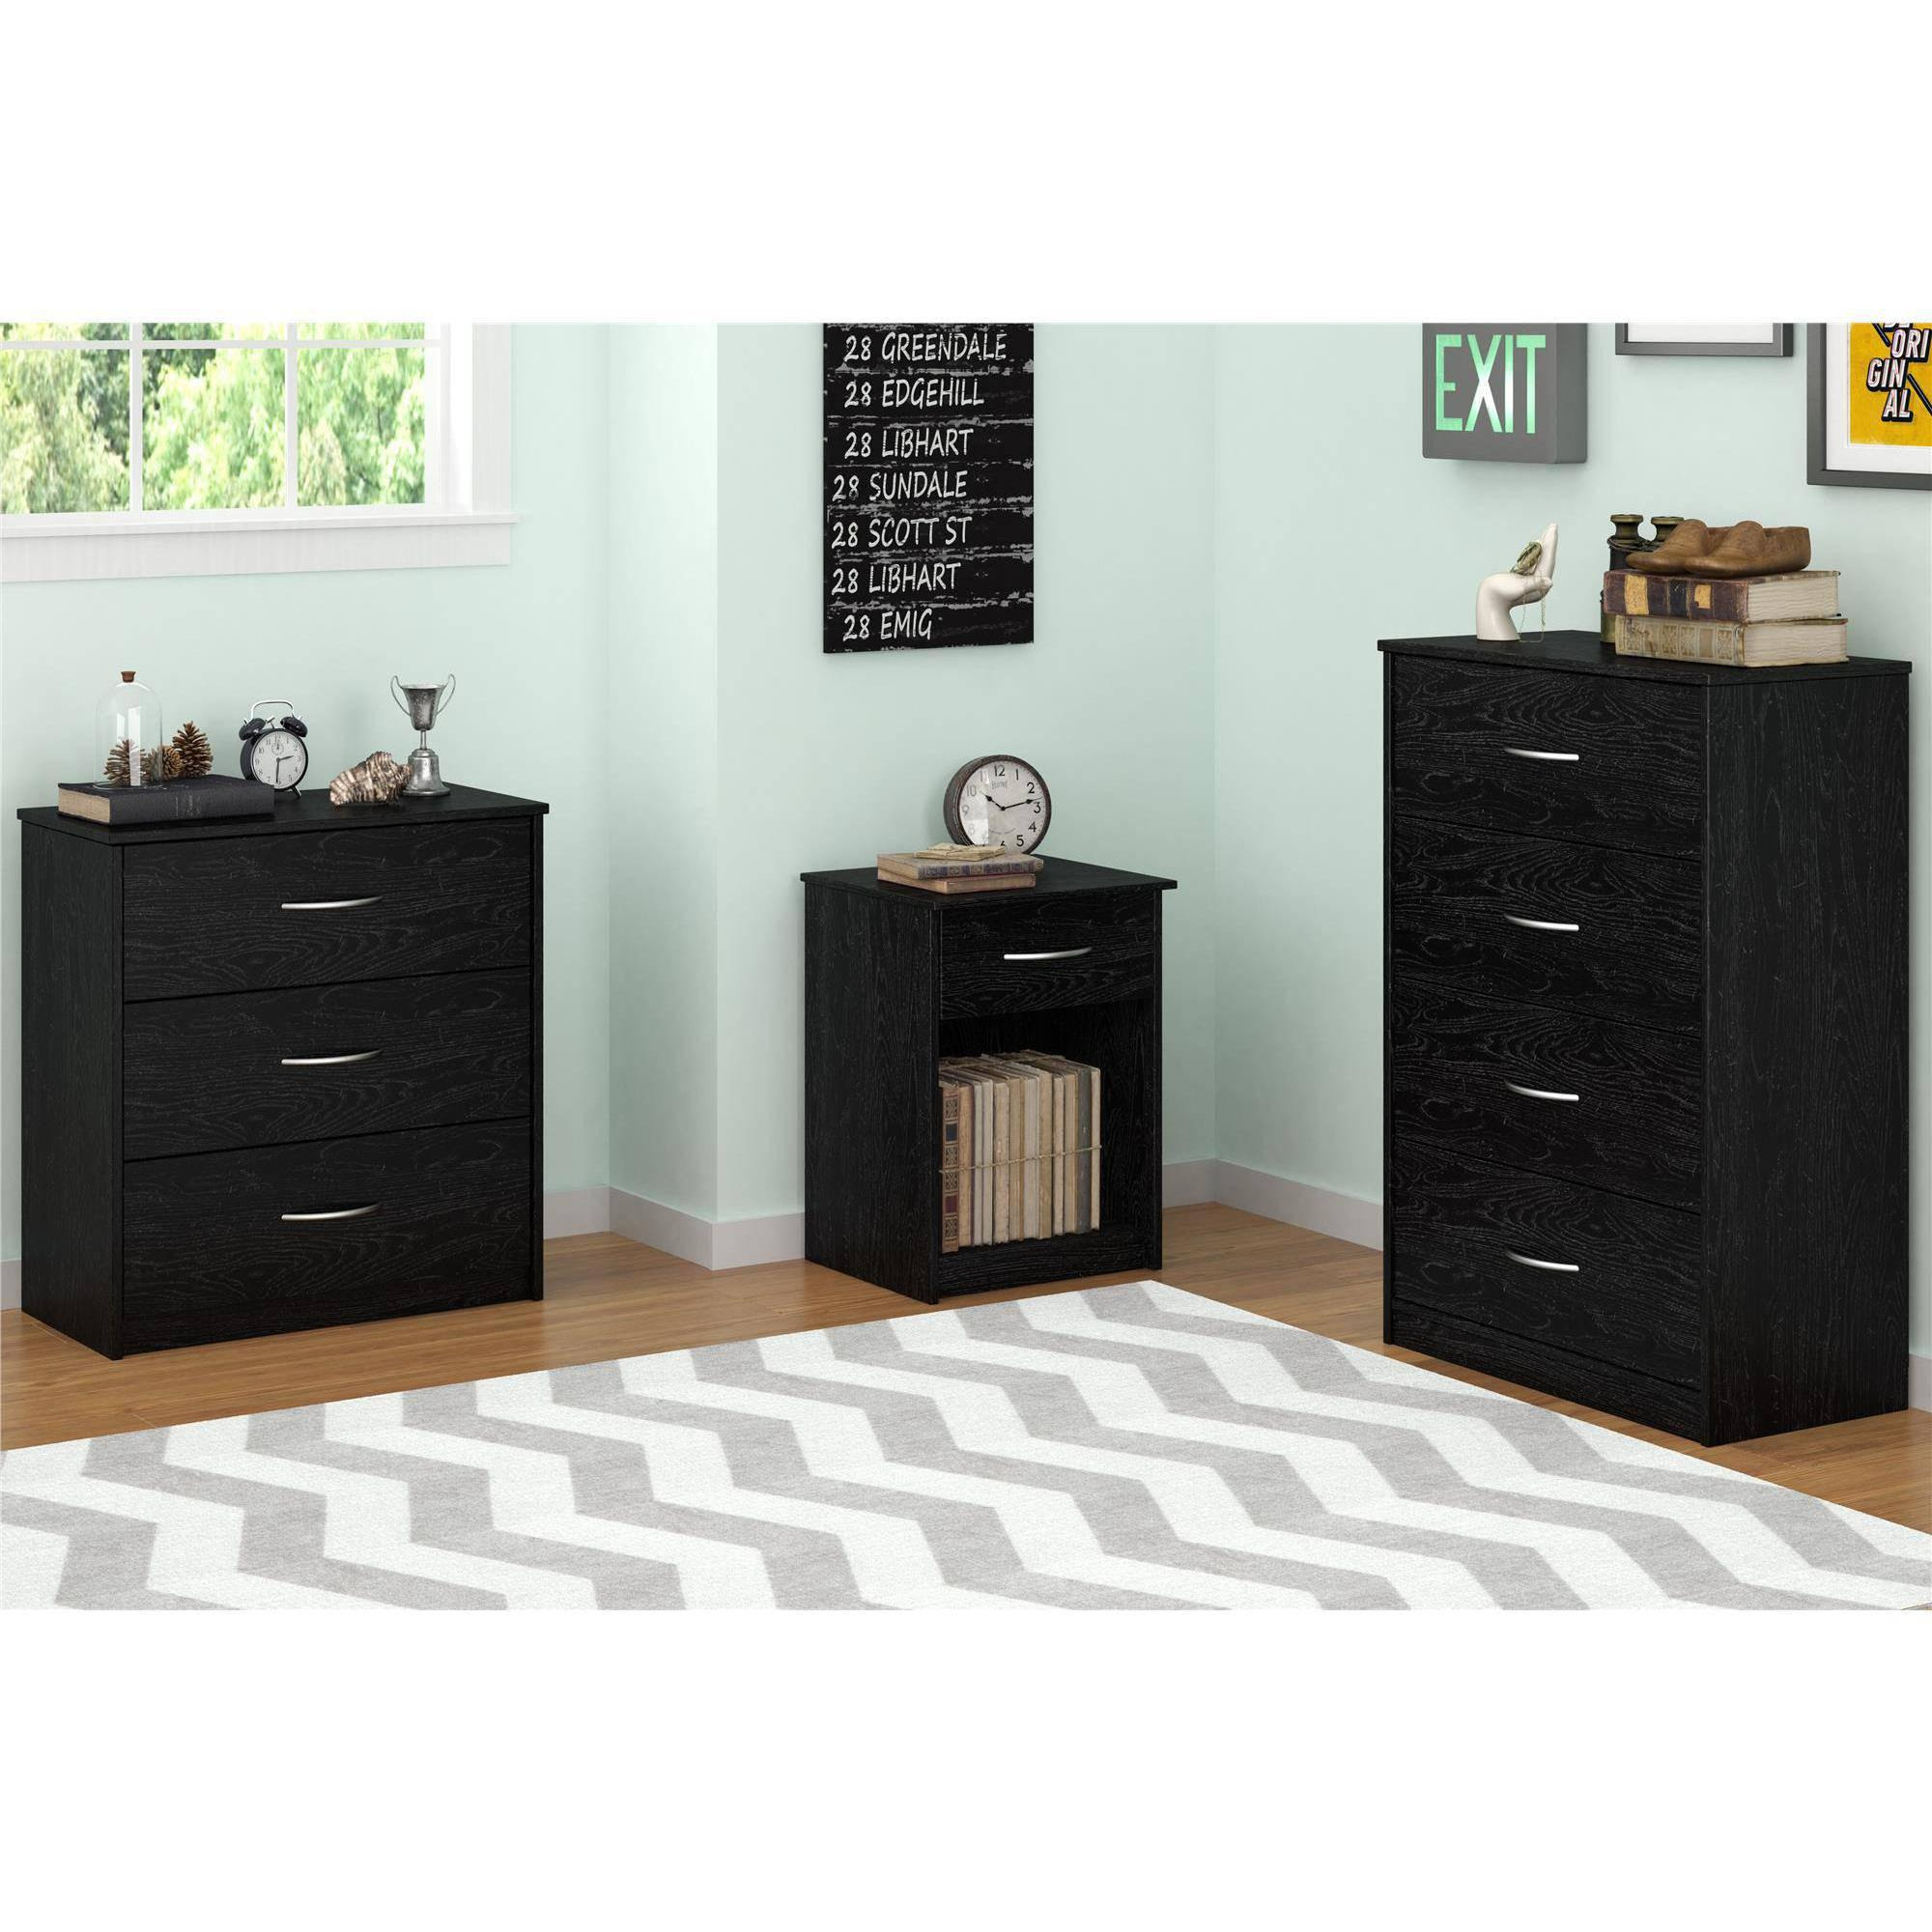 Mainstays Bedroom Storage Dresser Chest 4 Drawer Modern ...